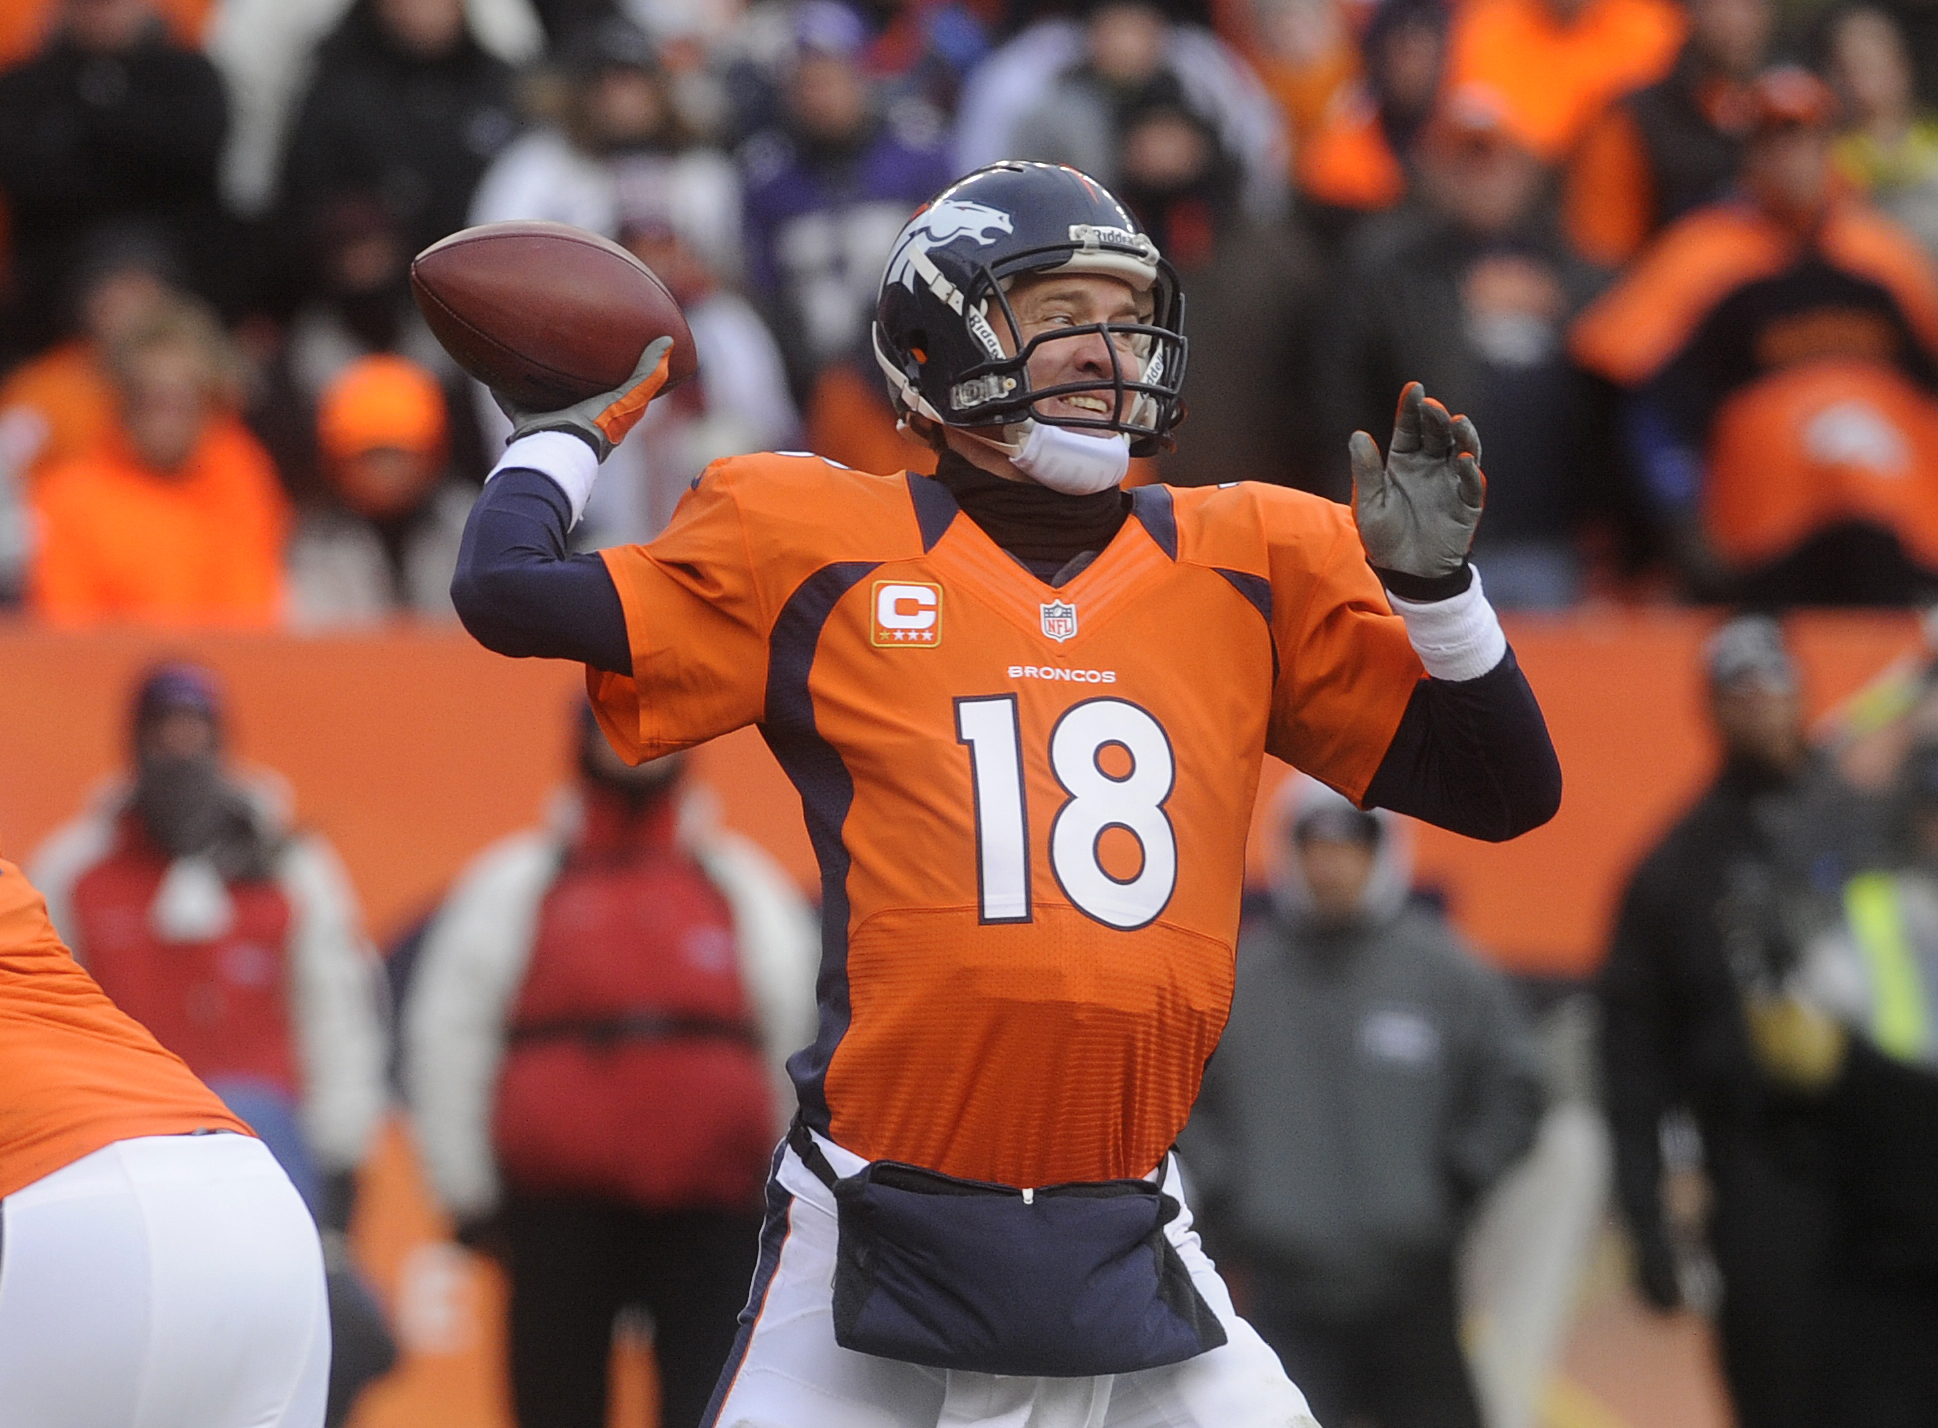 Peyton Manning in the Ravens game at Sports Authority Field at Mile High on Jan. 12, 2013. (credit: Evan Semón/CBS4)